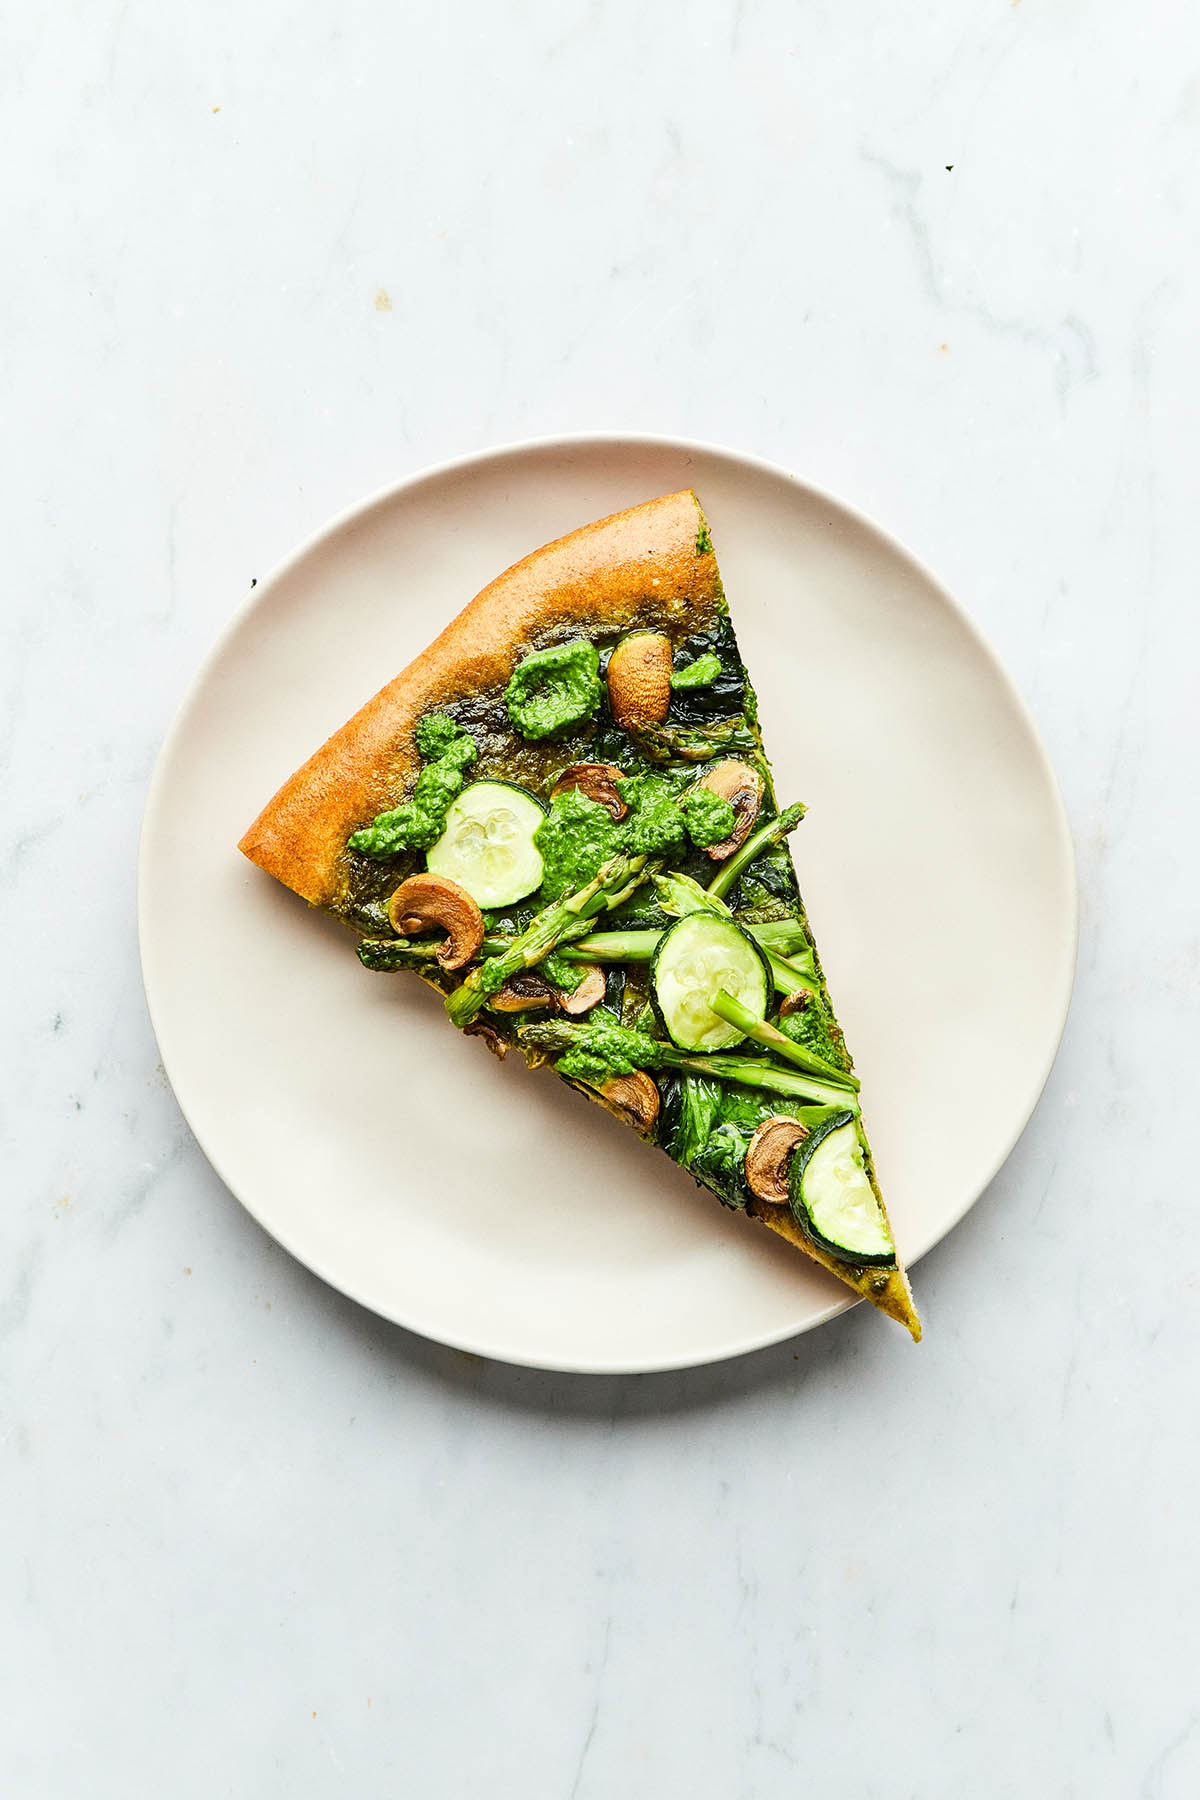 A slice of pesto pizza on a plate.